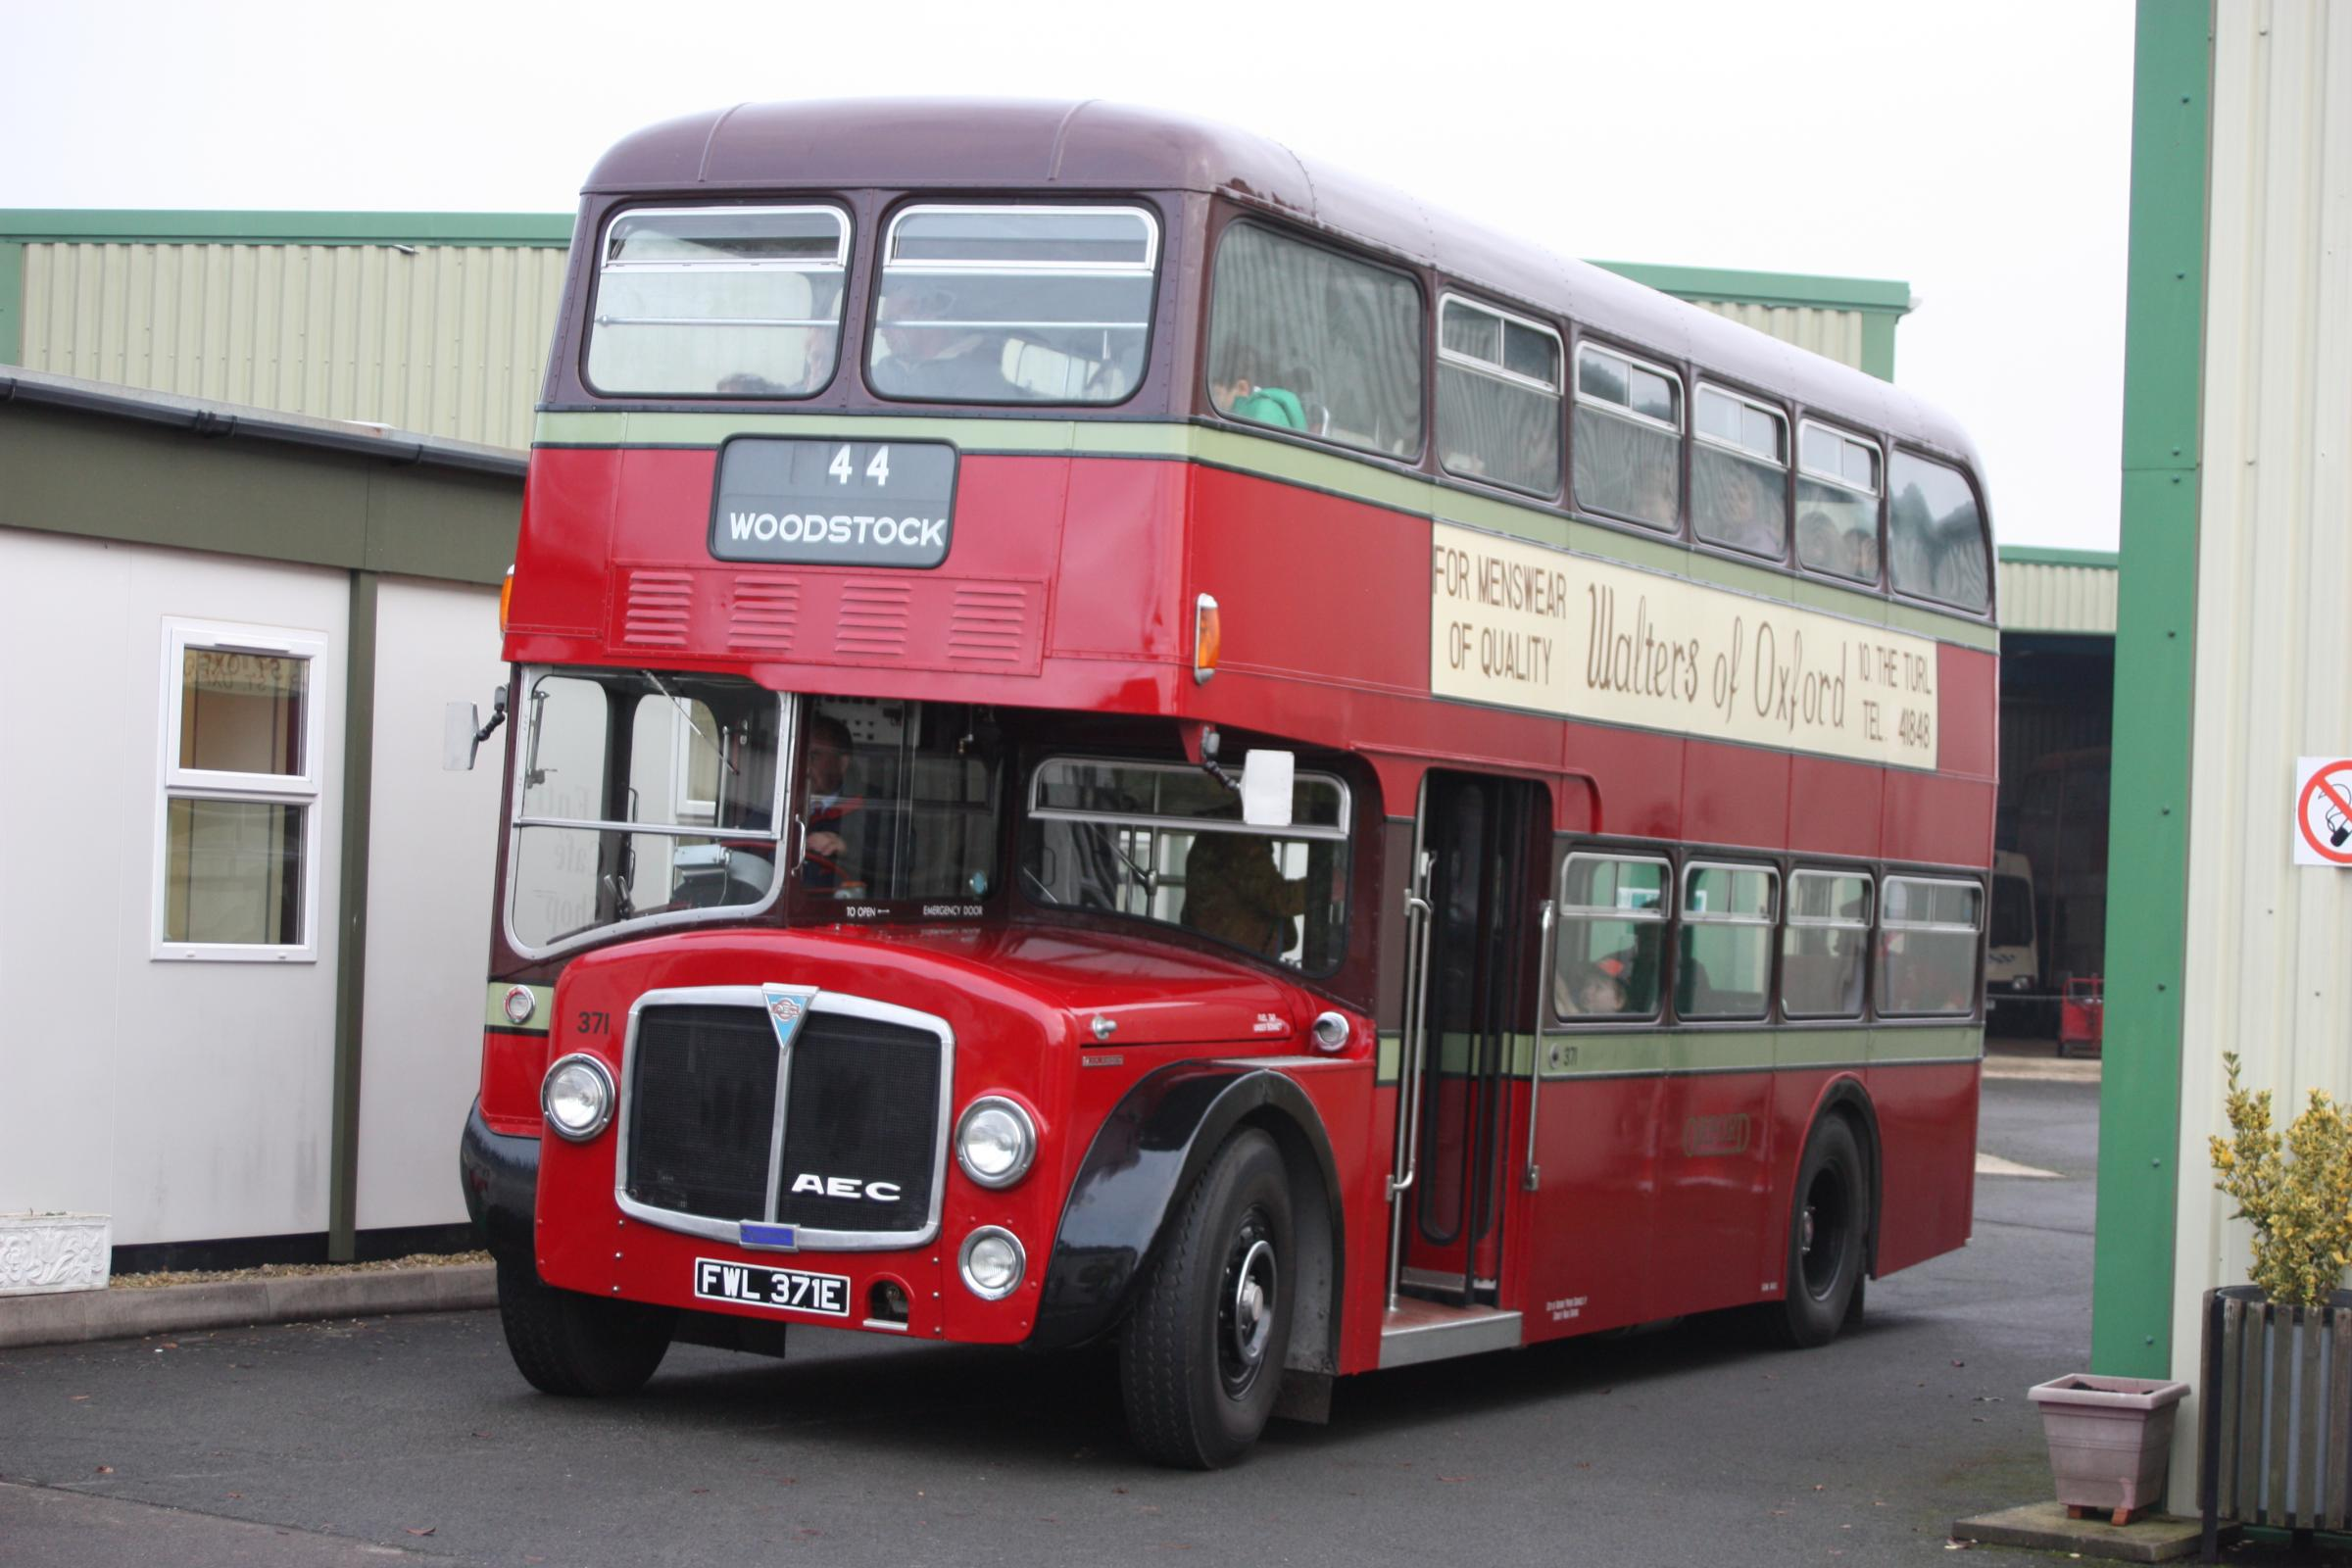 Free bus rides for Oxford Bus Museum Visitors